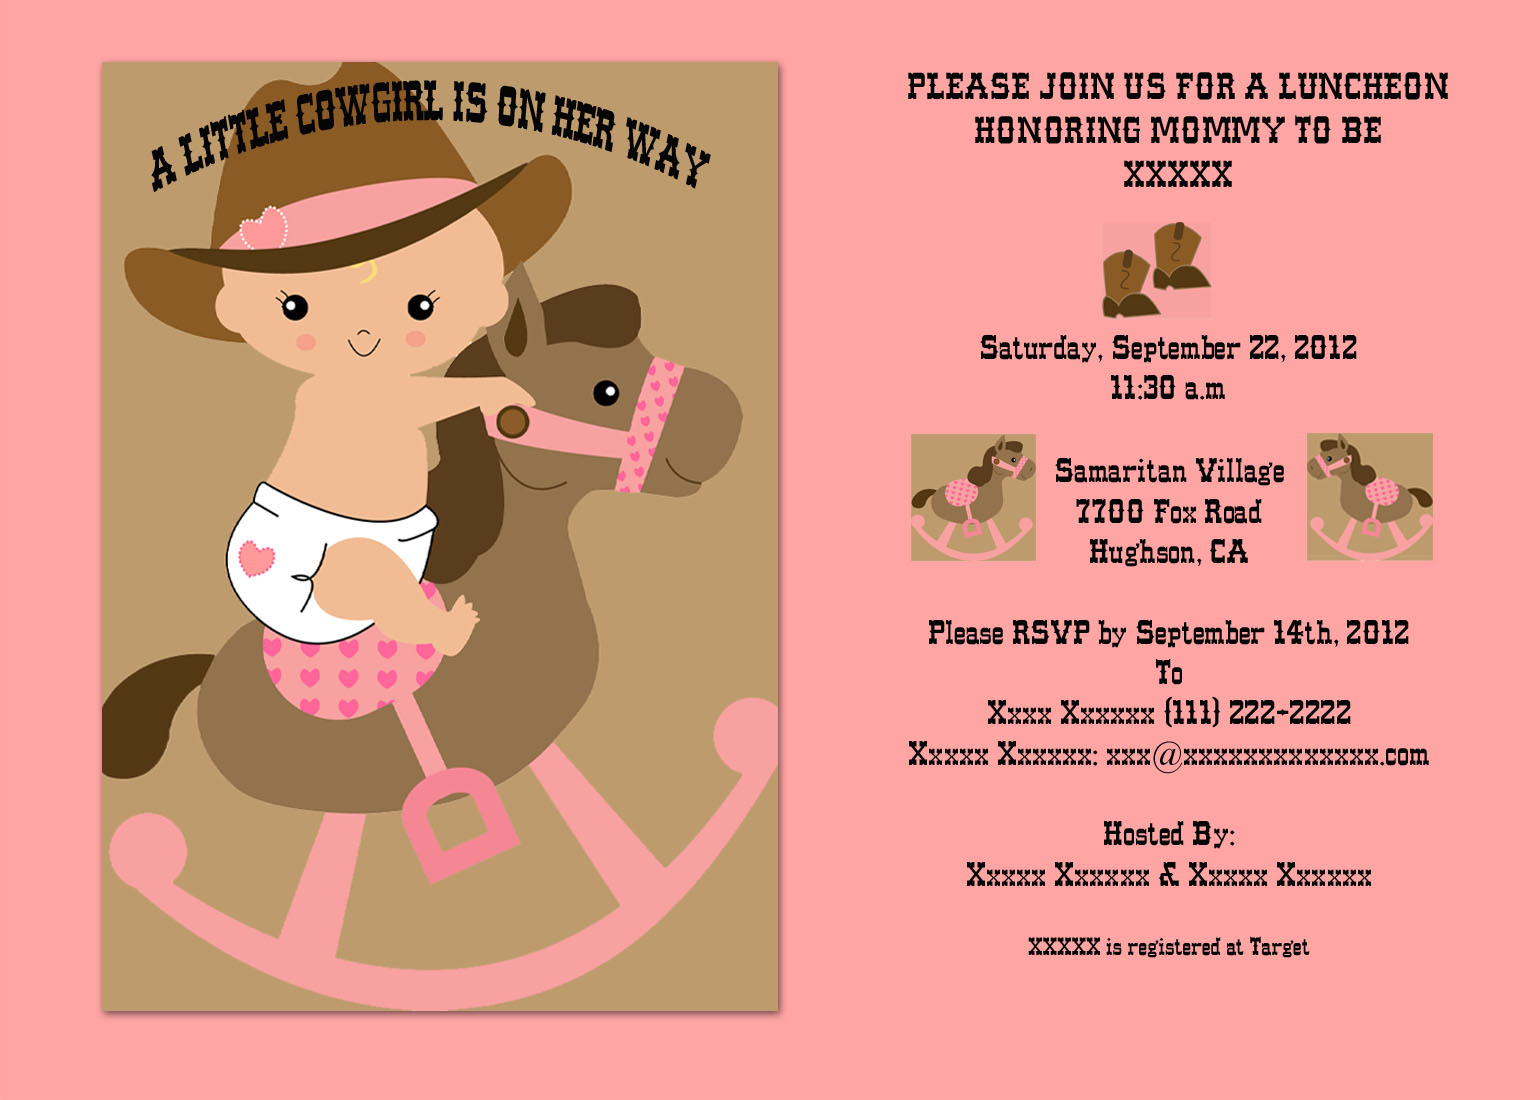 Cowgirl clipart baby shower Theme Baby shower Crafty Shower